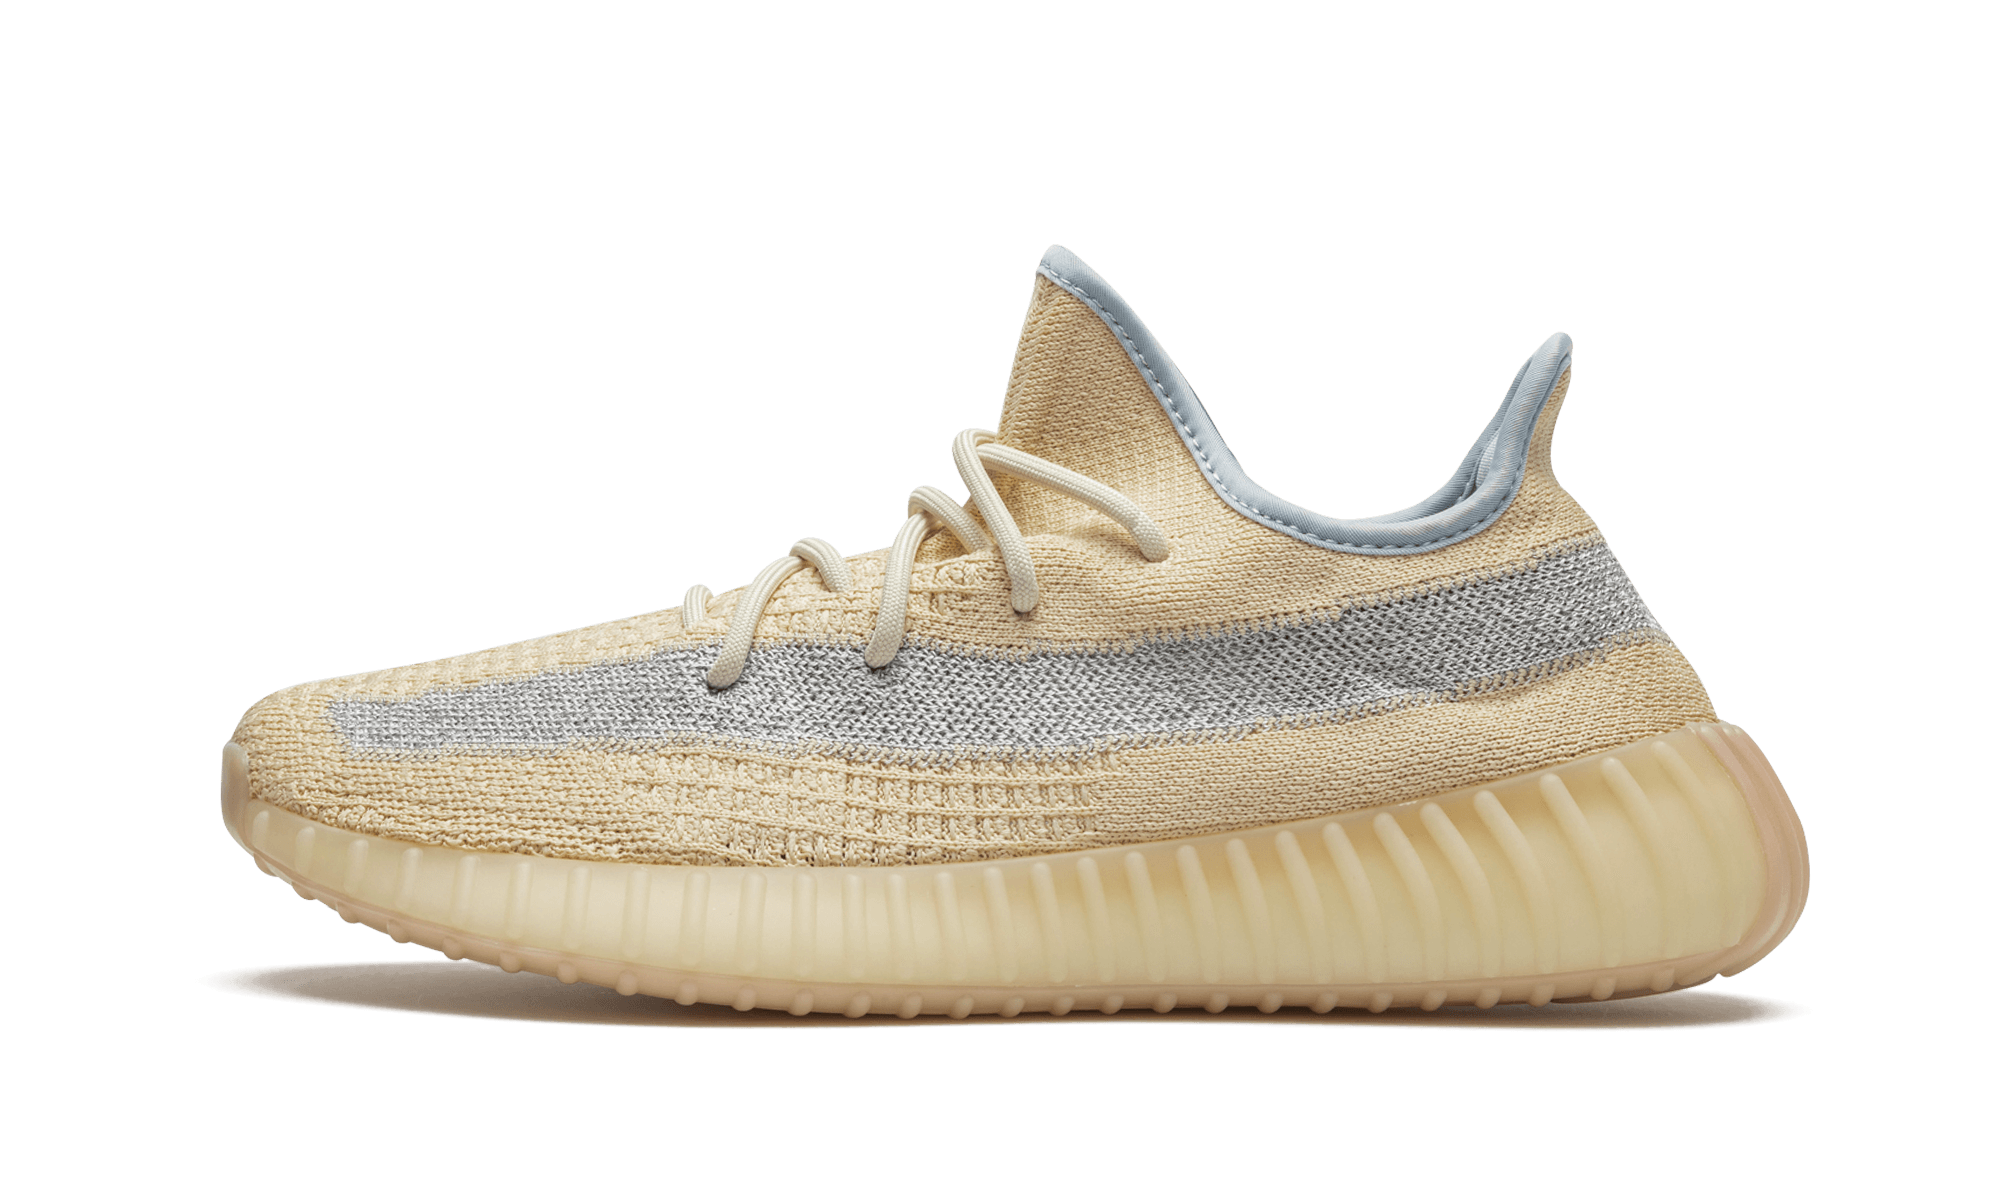 For sale the best Adidas Yeezy Boost 350 V2 Linen